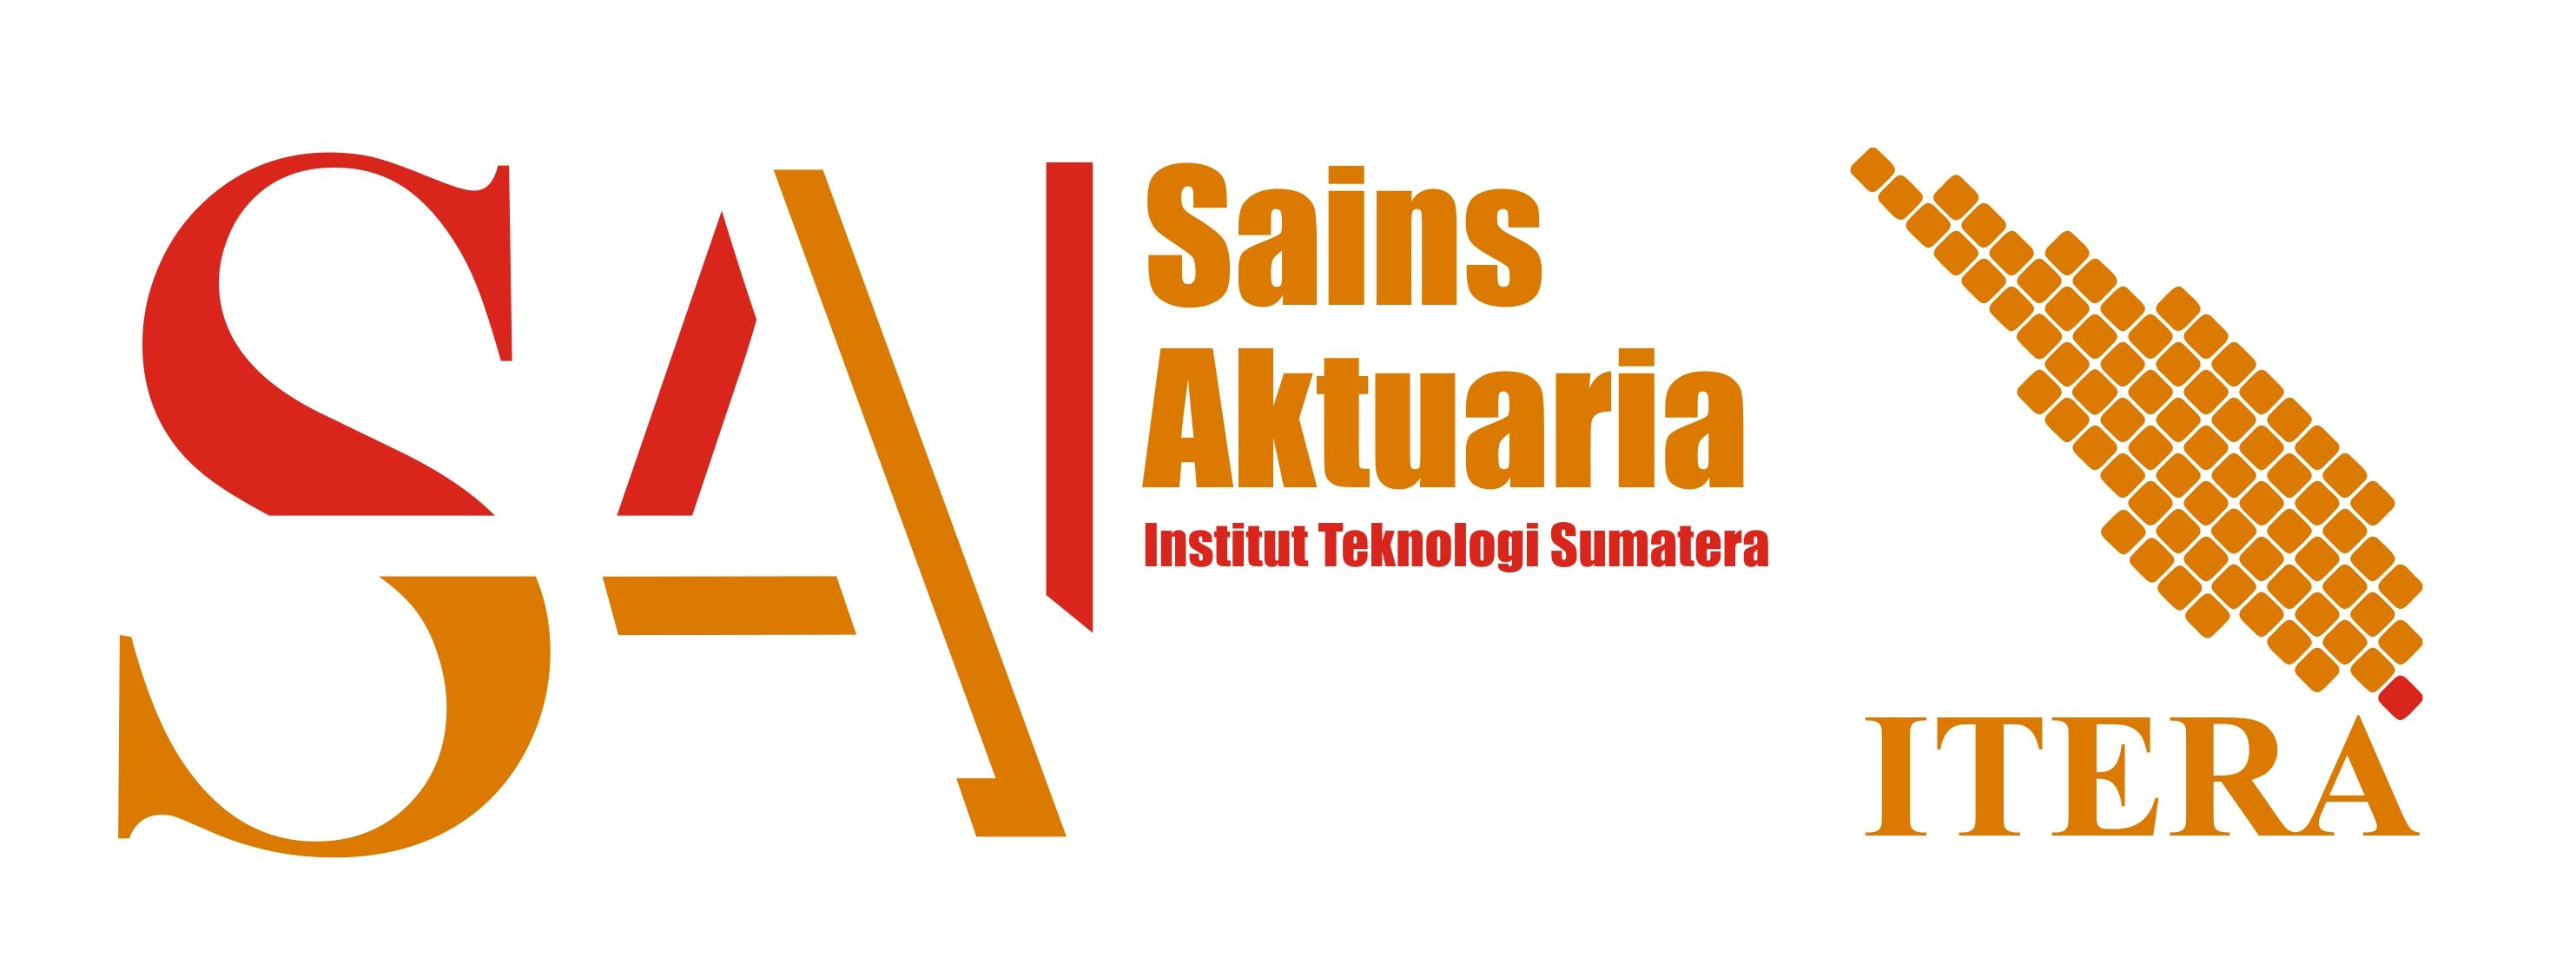 Sains Aktuaria